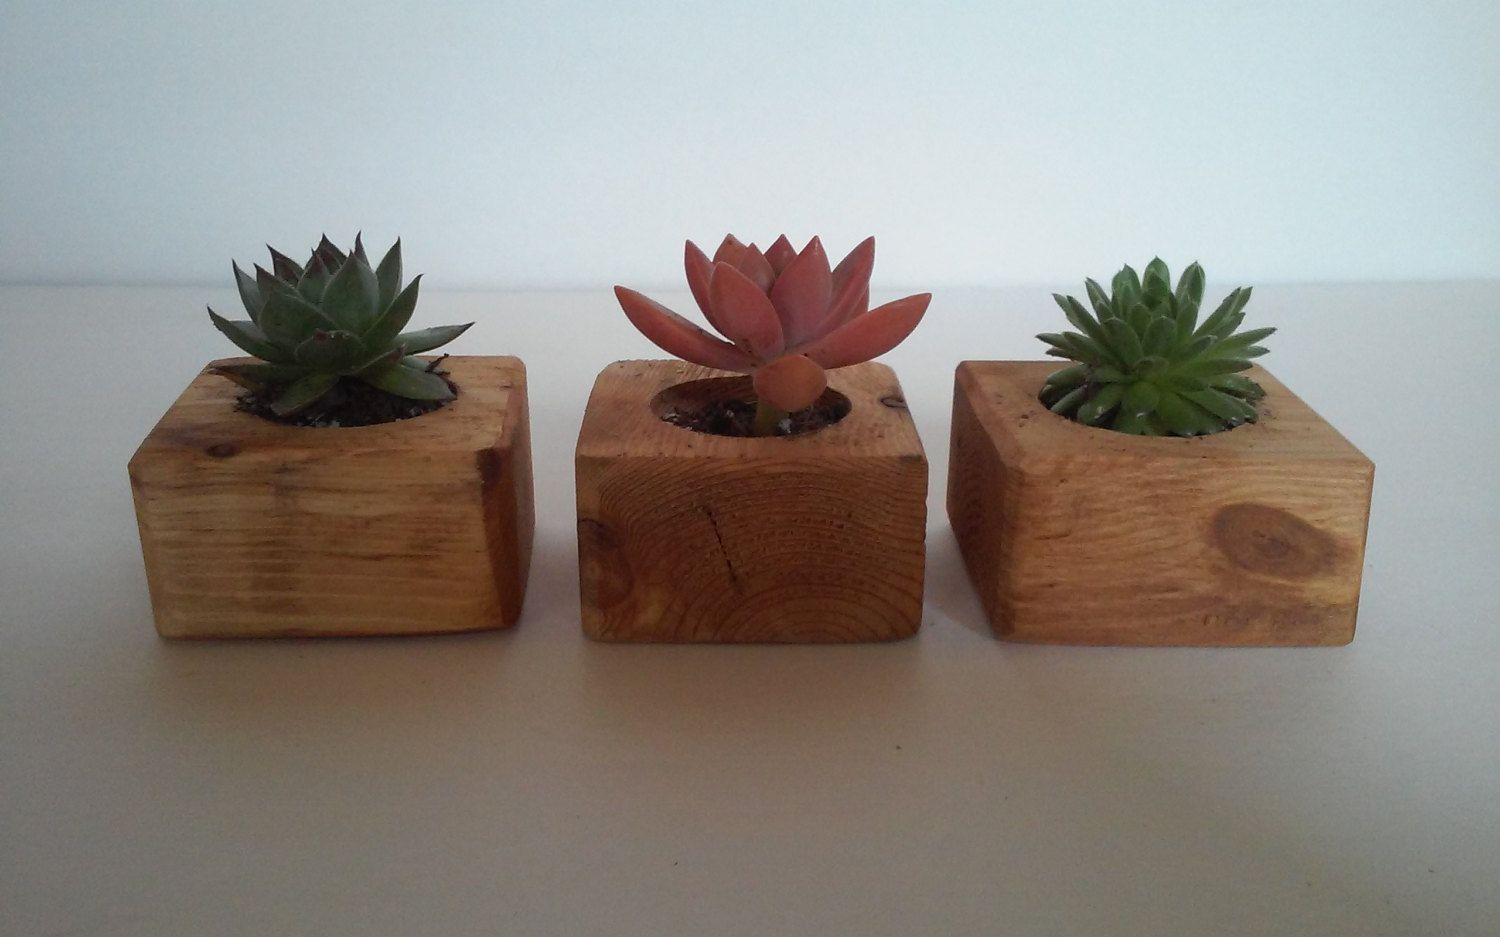 Handmade succulent wedding favors by Theplantcycler on